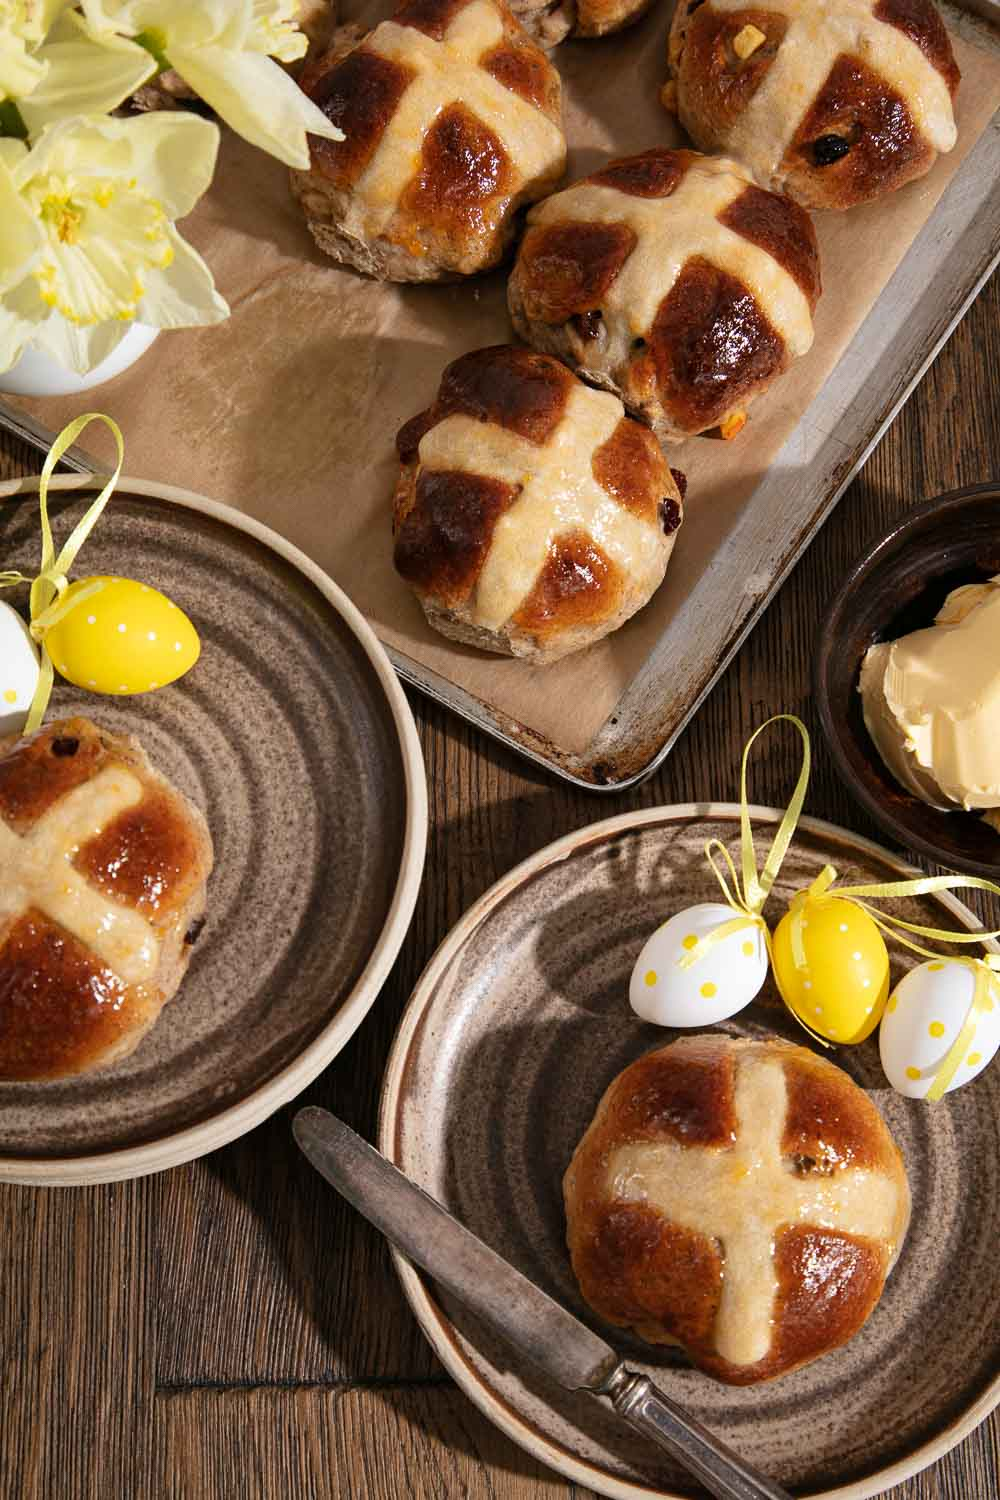 Homebaked Vegan Hot Cross Buns on a baking tray. Two buns on plates with Easter egg decorations.